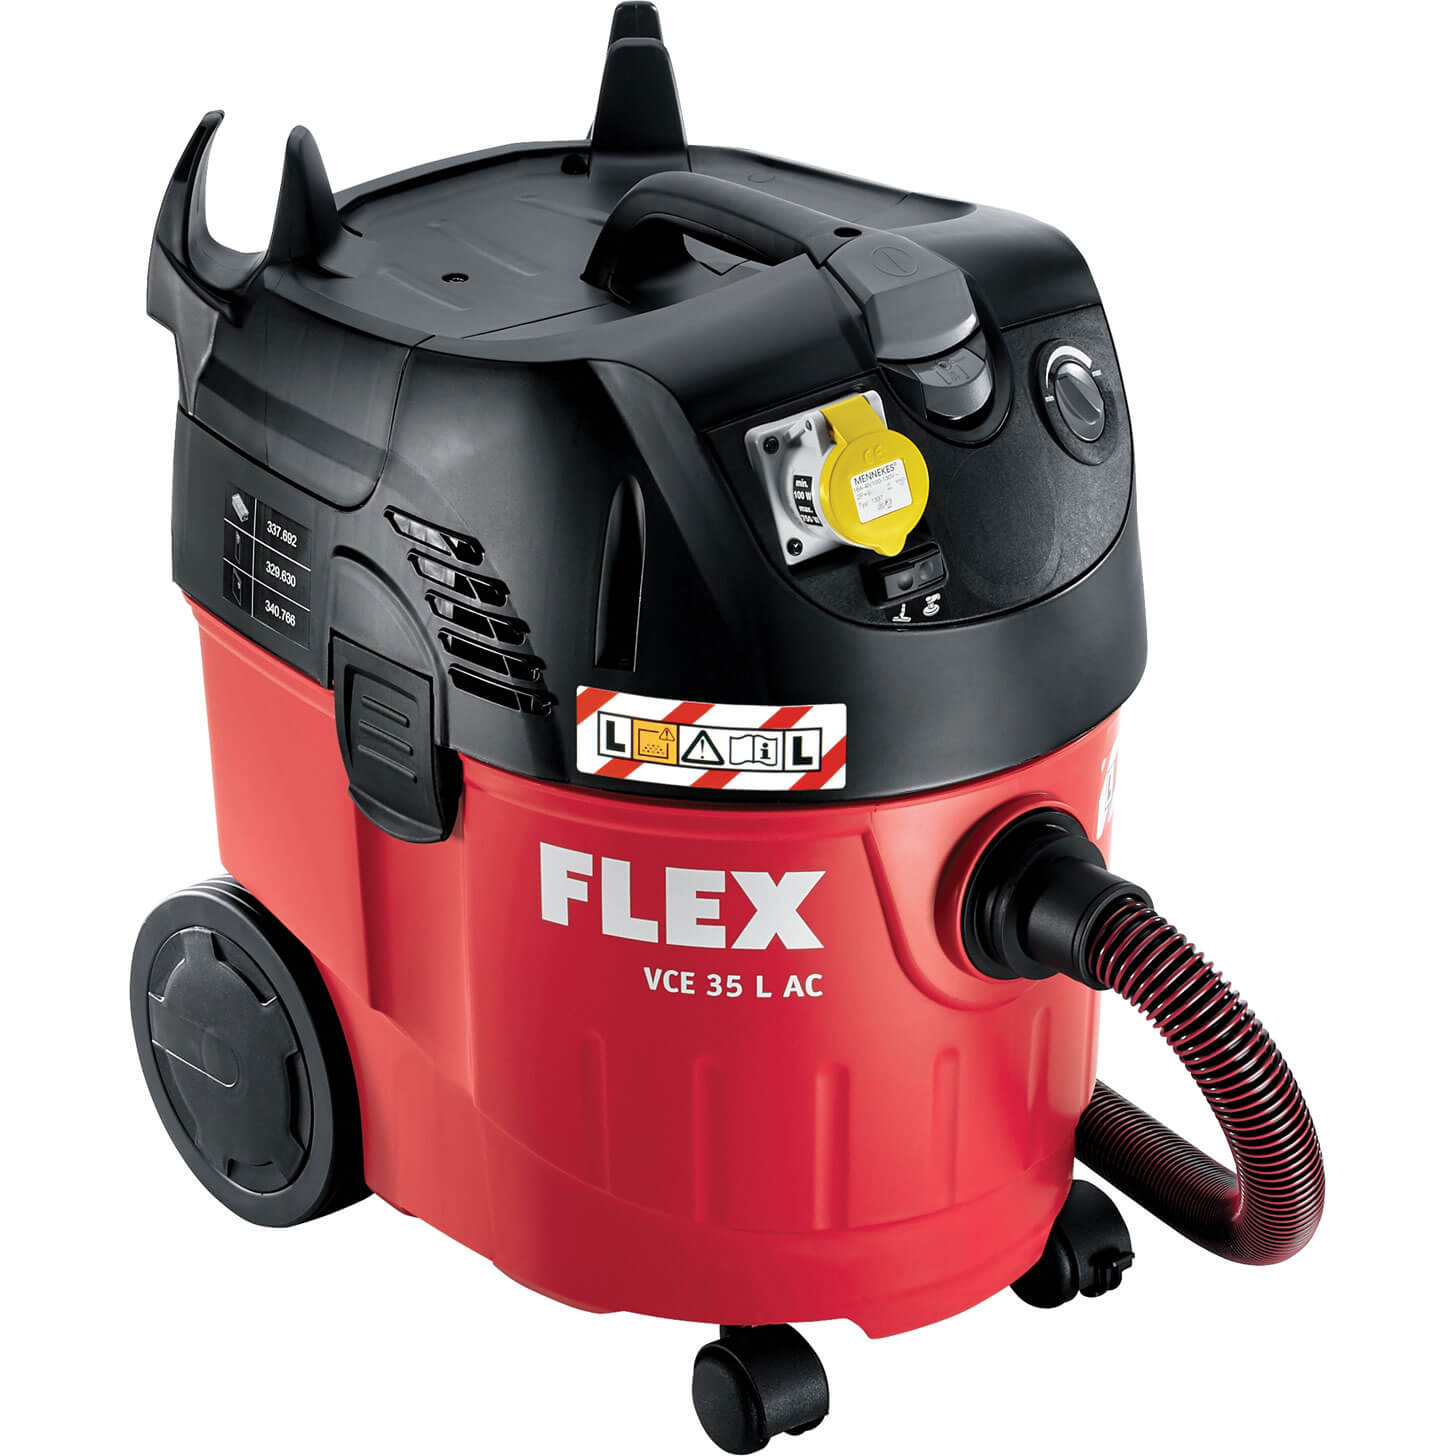 Image of Flex VCE35L Industrial Wet & Dry Vacuum Cleaner 1250w 110v